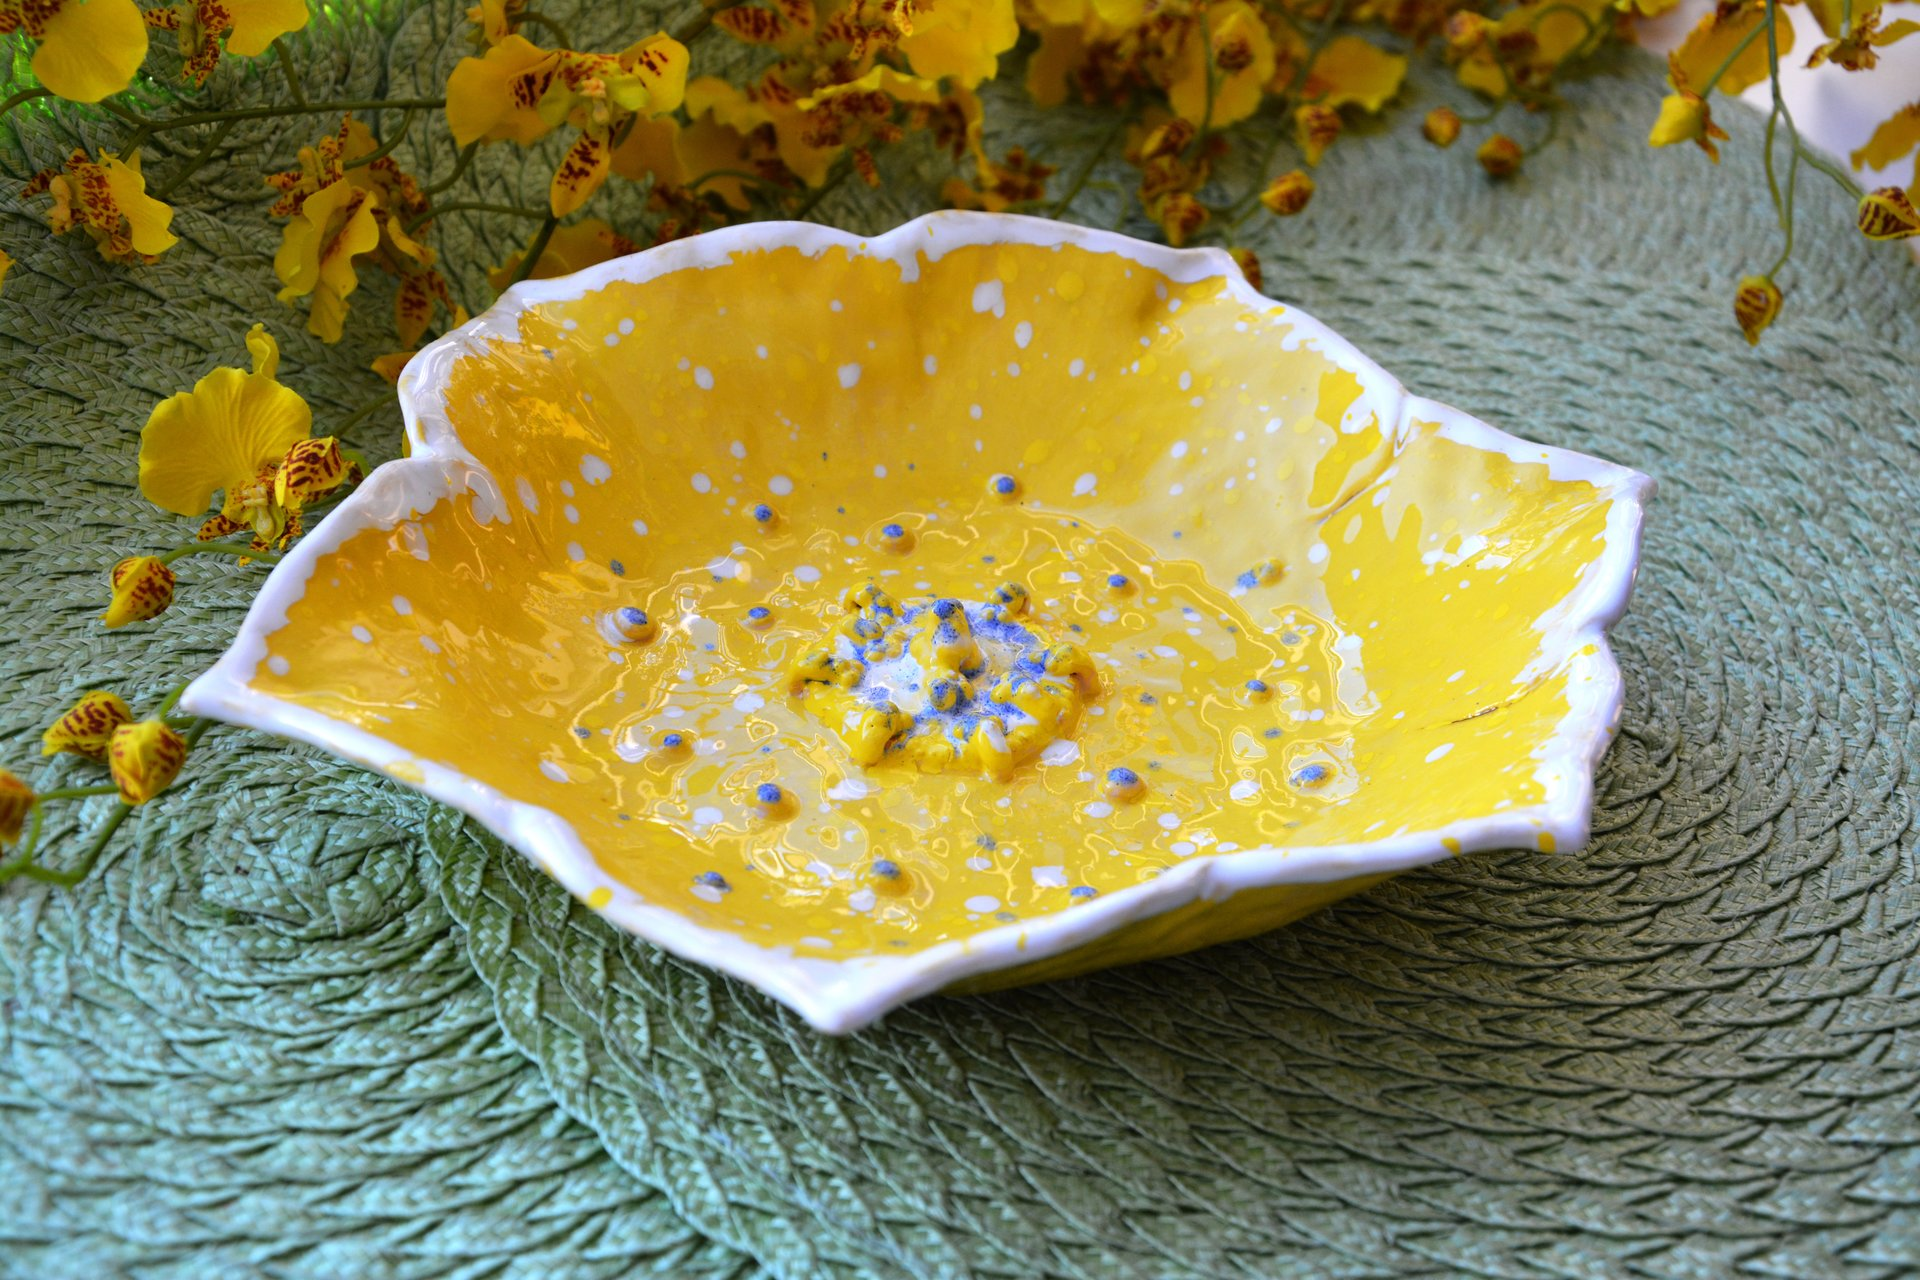 Yellow flower - Ceramic dishes, max diameter - 25 cm, photo 2 of 3.